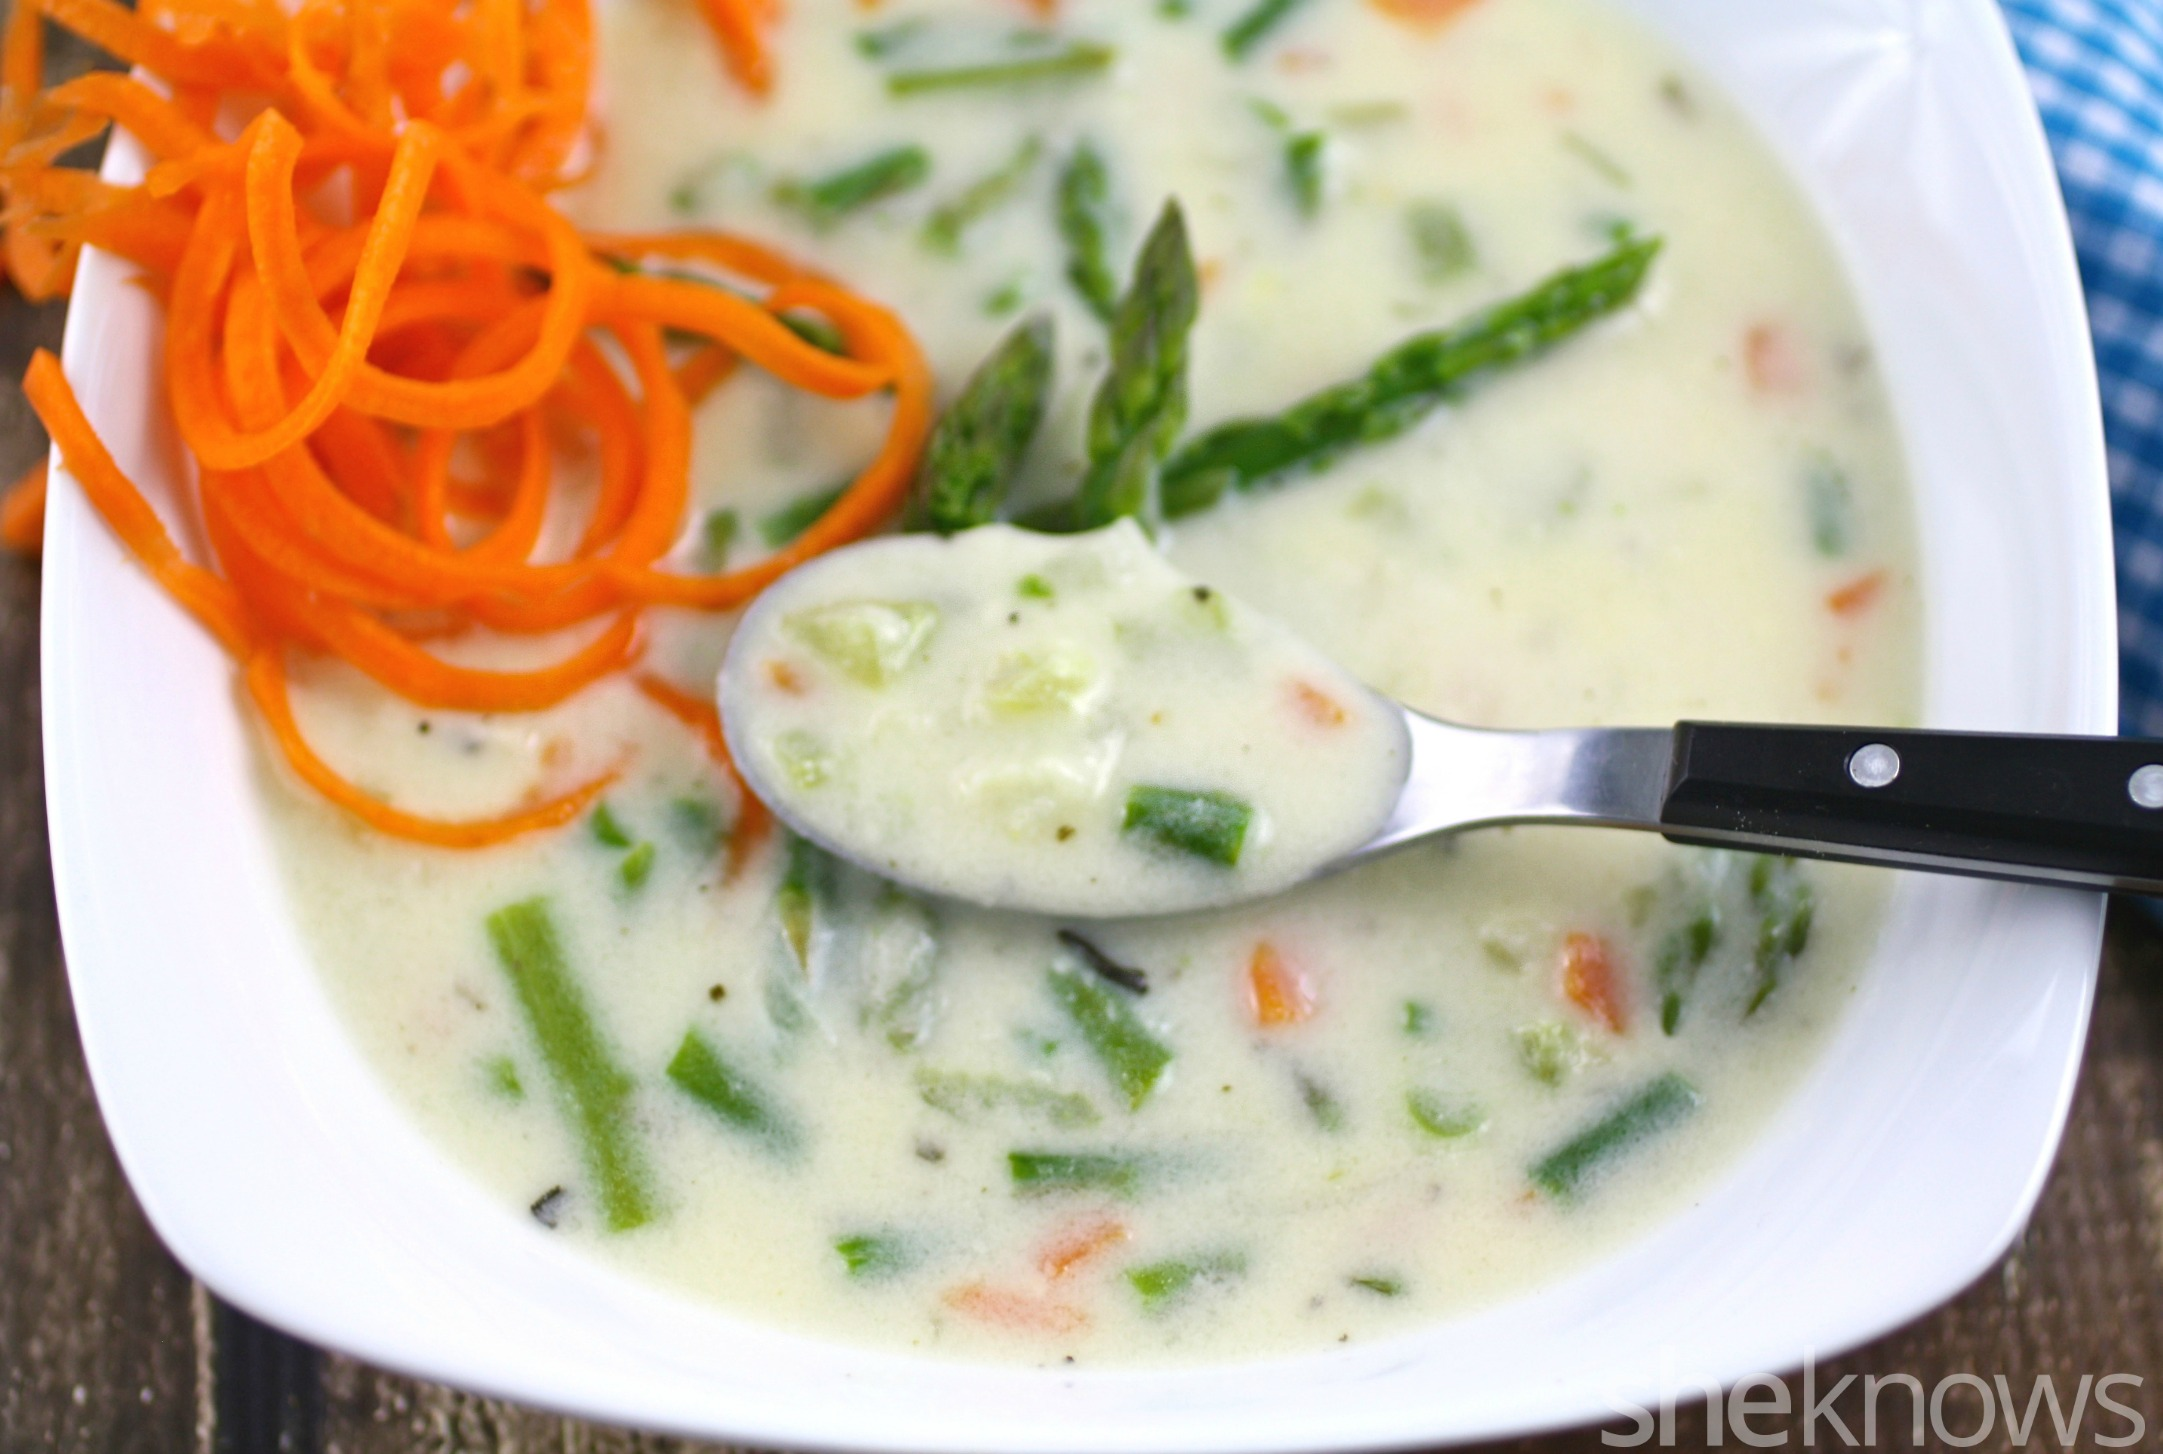 Dig into this bowl of cheesy asparagus chowder with carrot curl garnish